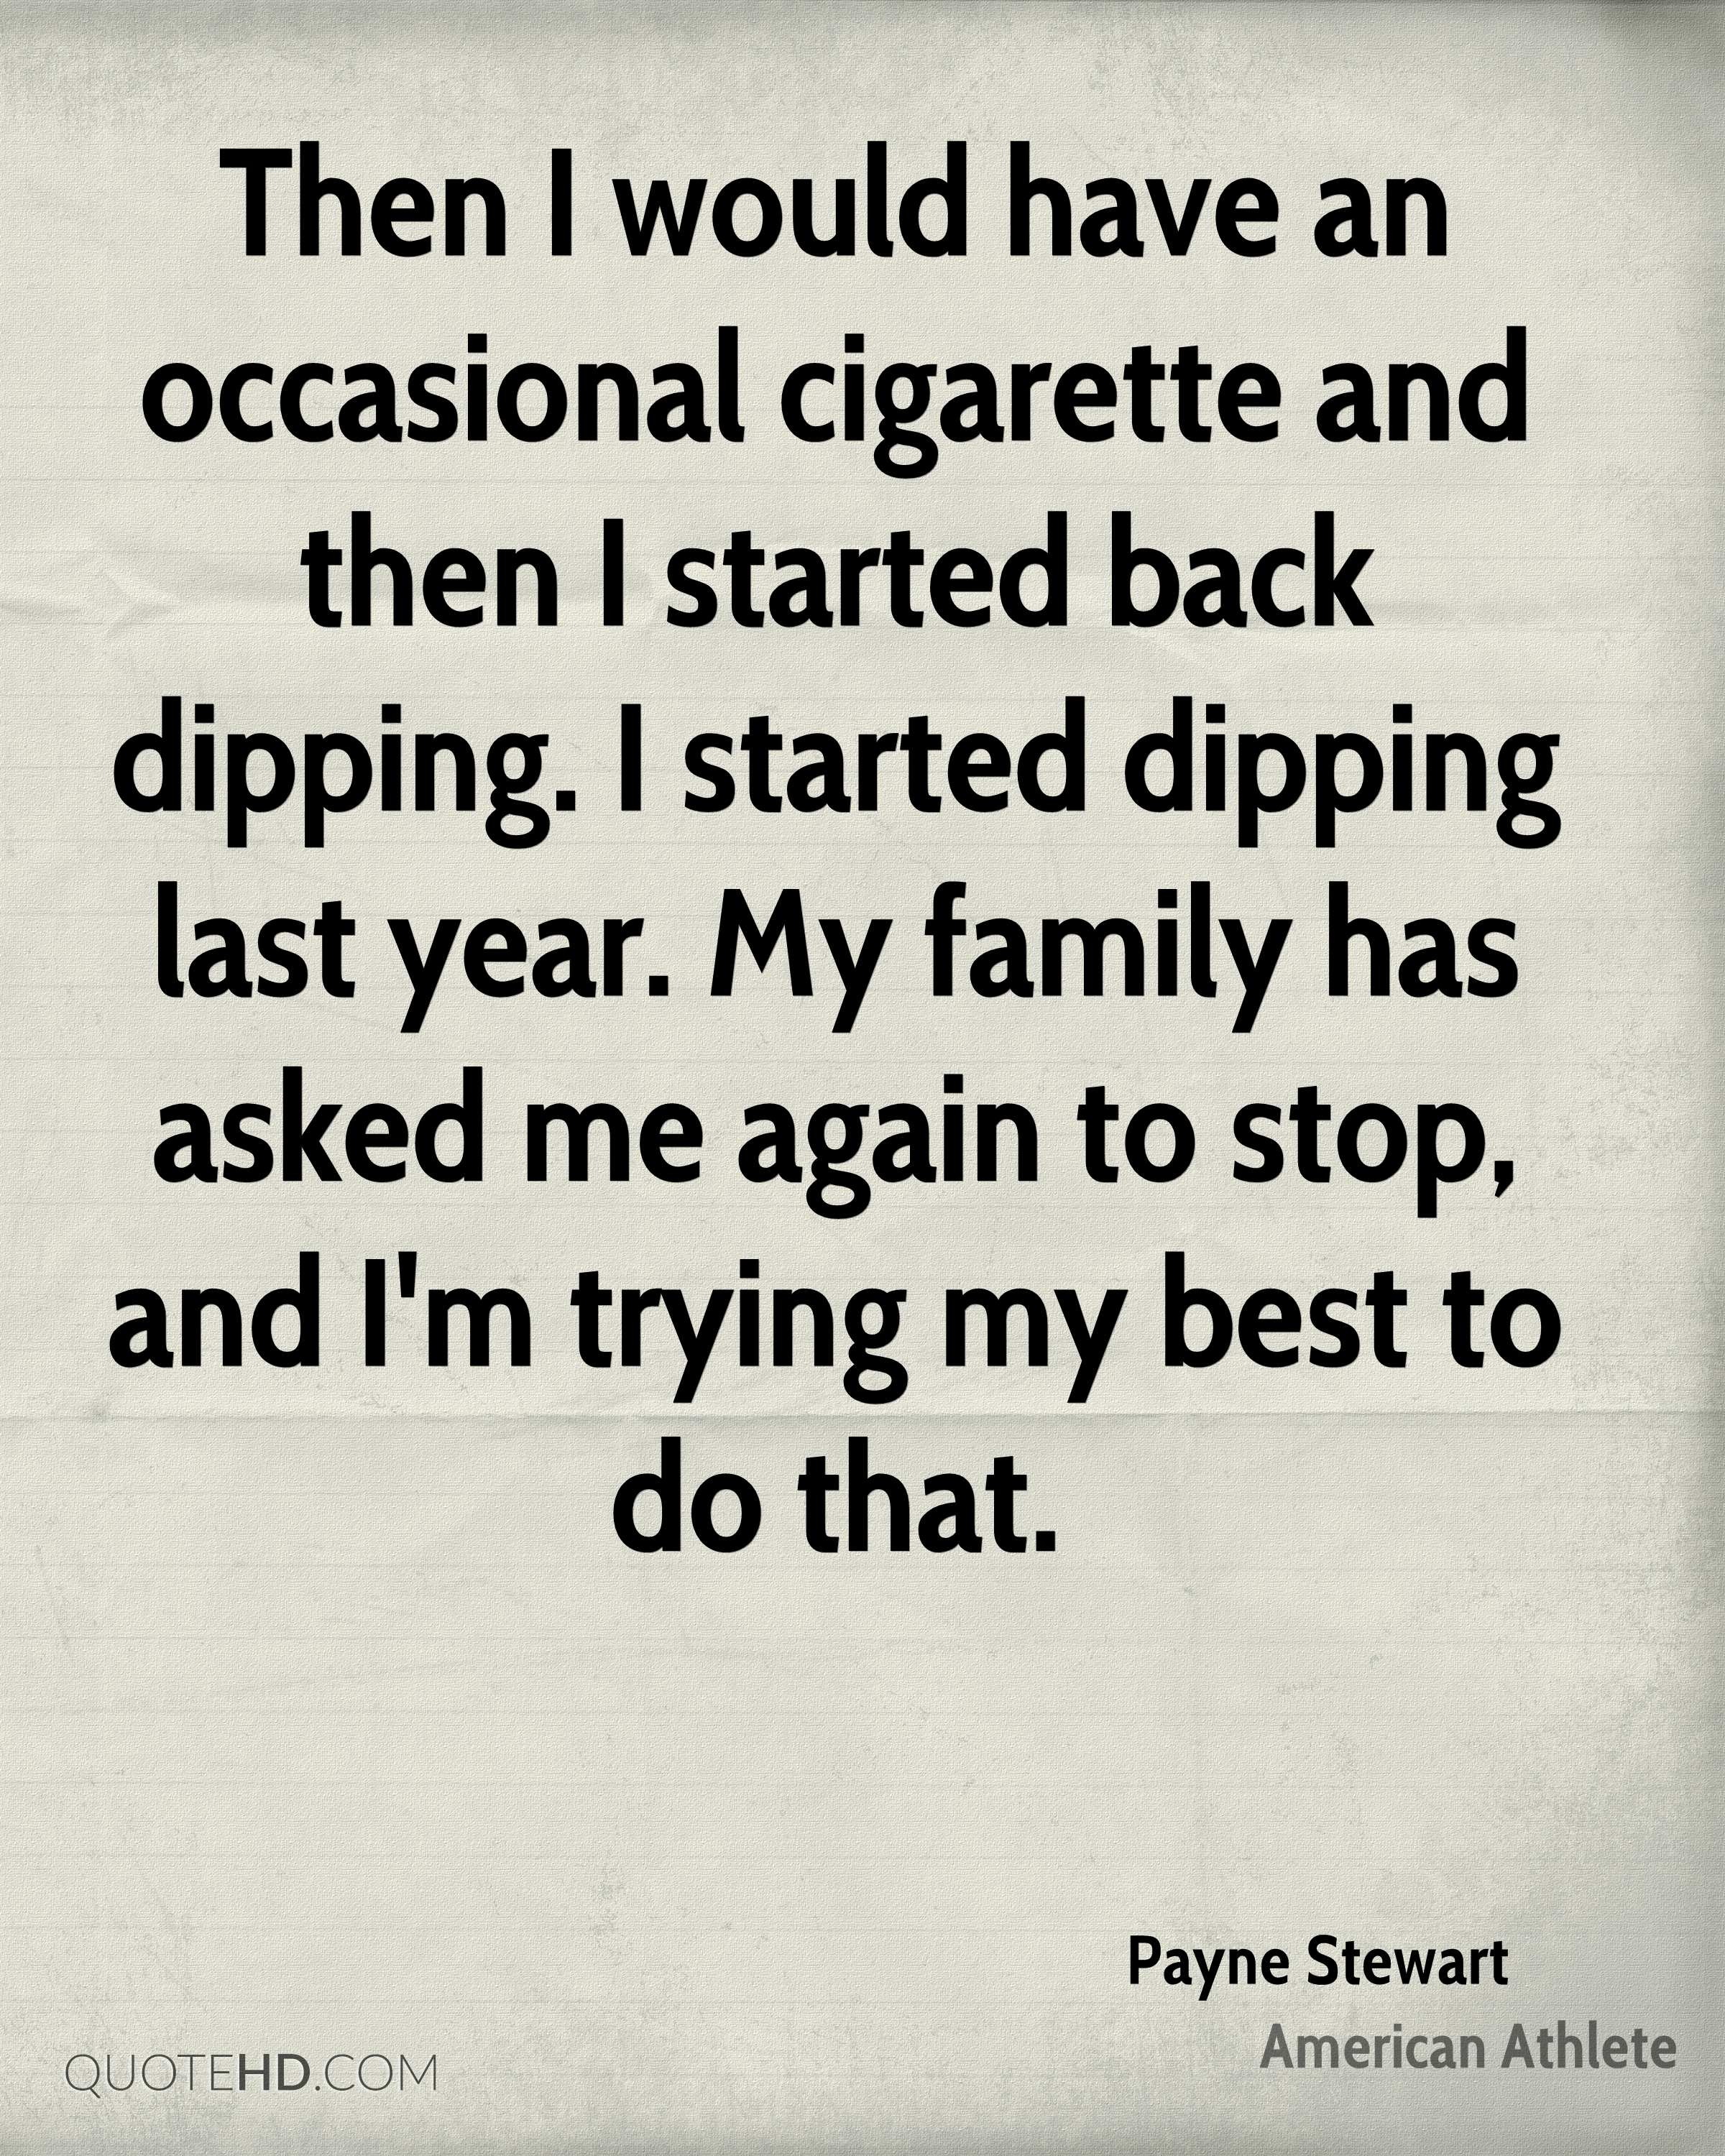 Then I would have an occasional cigarette and then I started back dipping. I started dipping last year. My family has asked me again to stop, and I'm trying my best to do that.